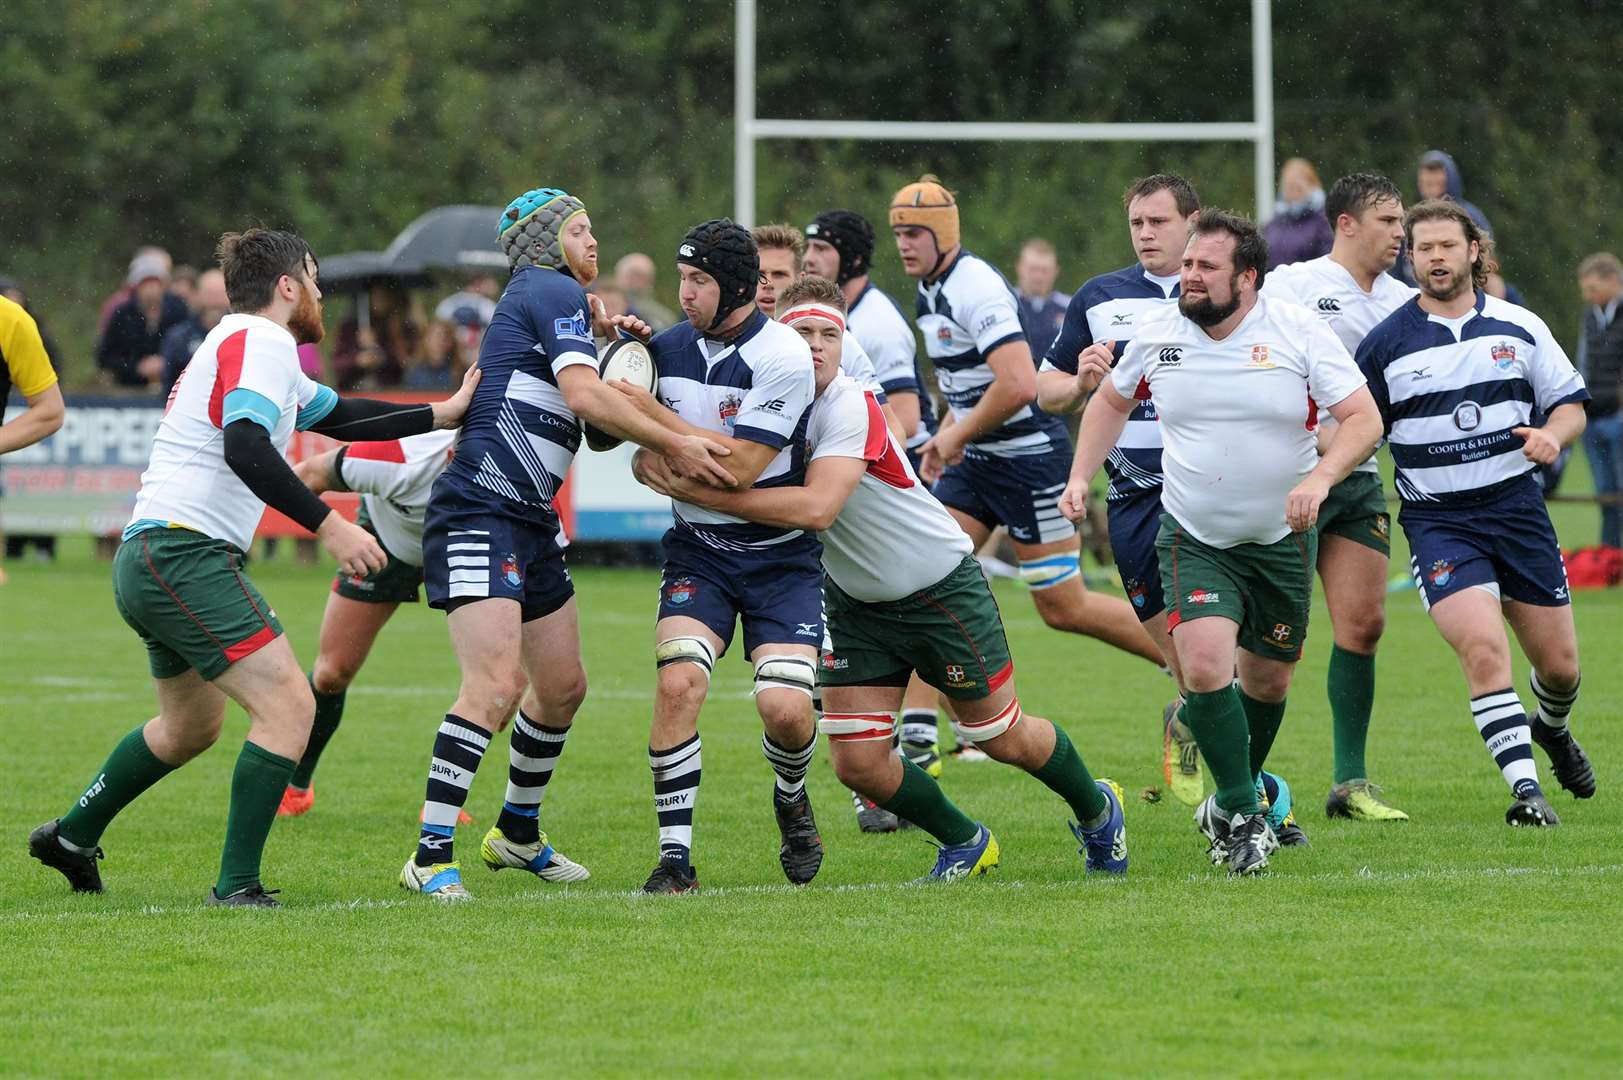 RUGBY - Sudbury v Luton..Pictured: ...PICTURE: Mecha Morton... .. (26258209)